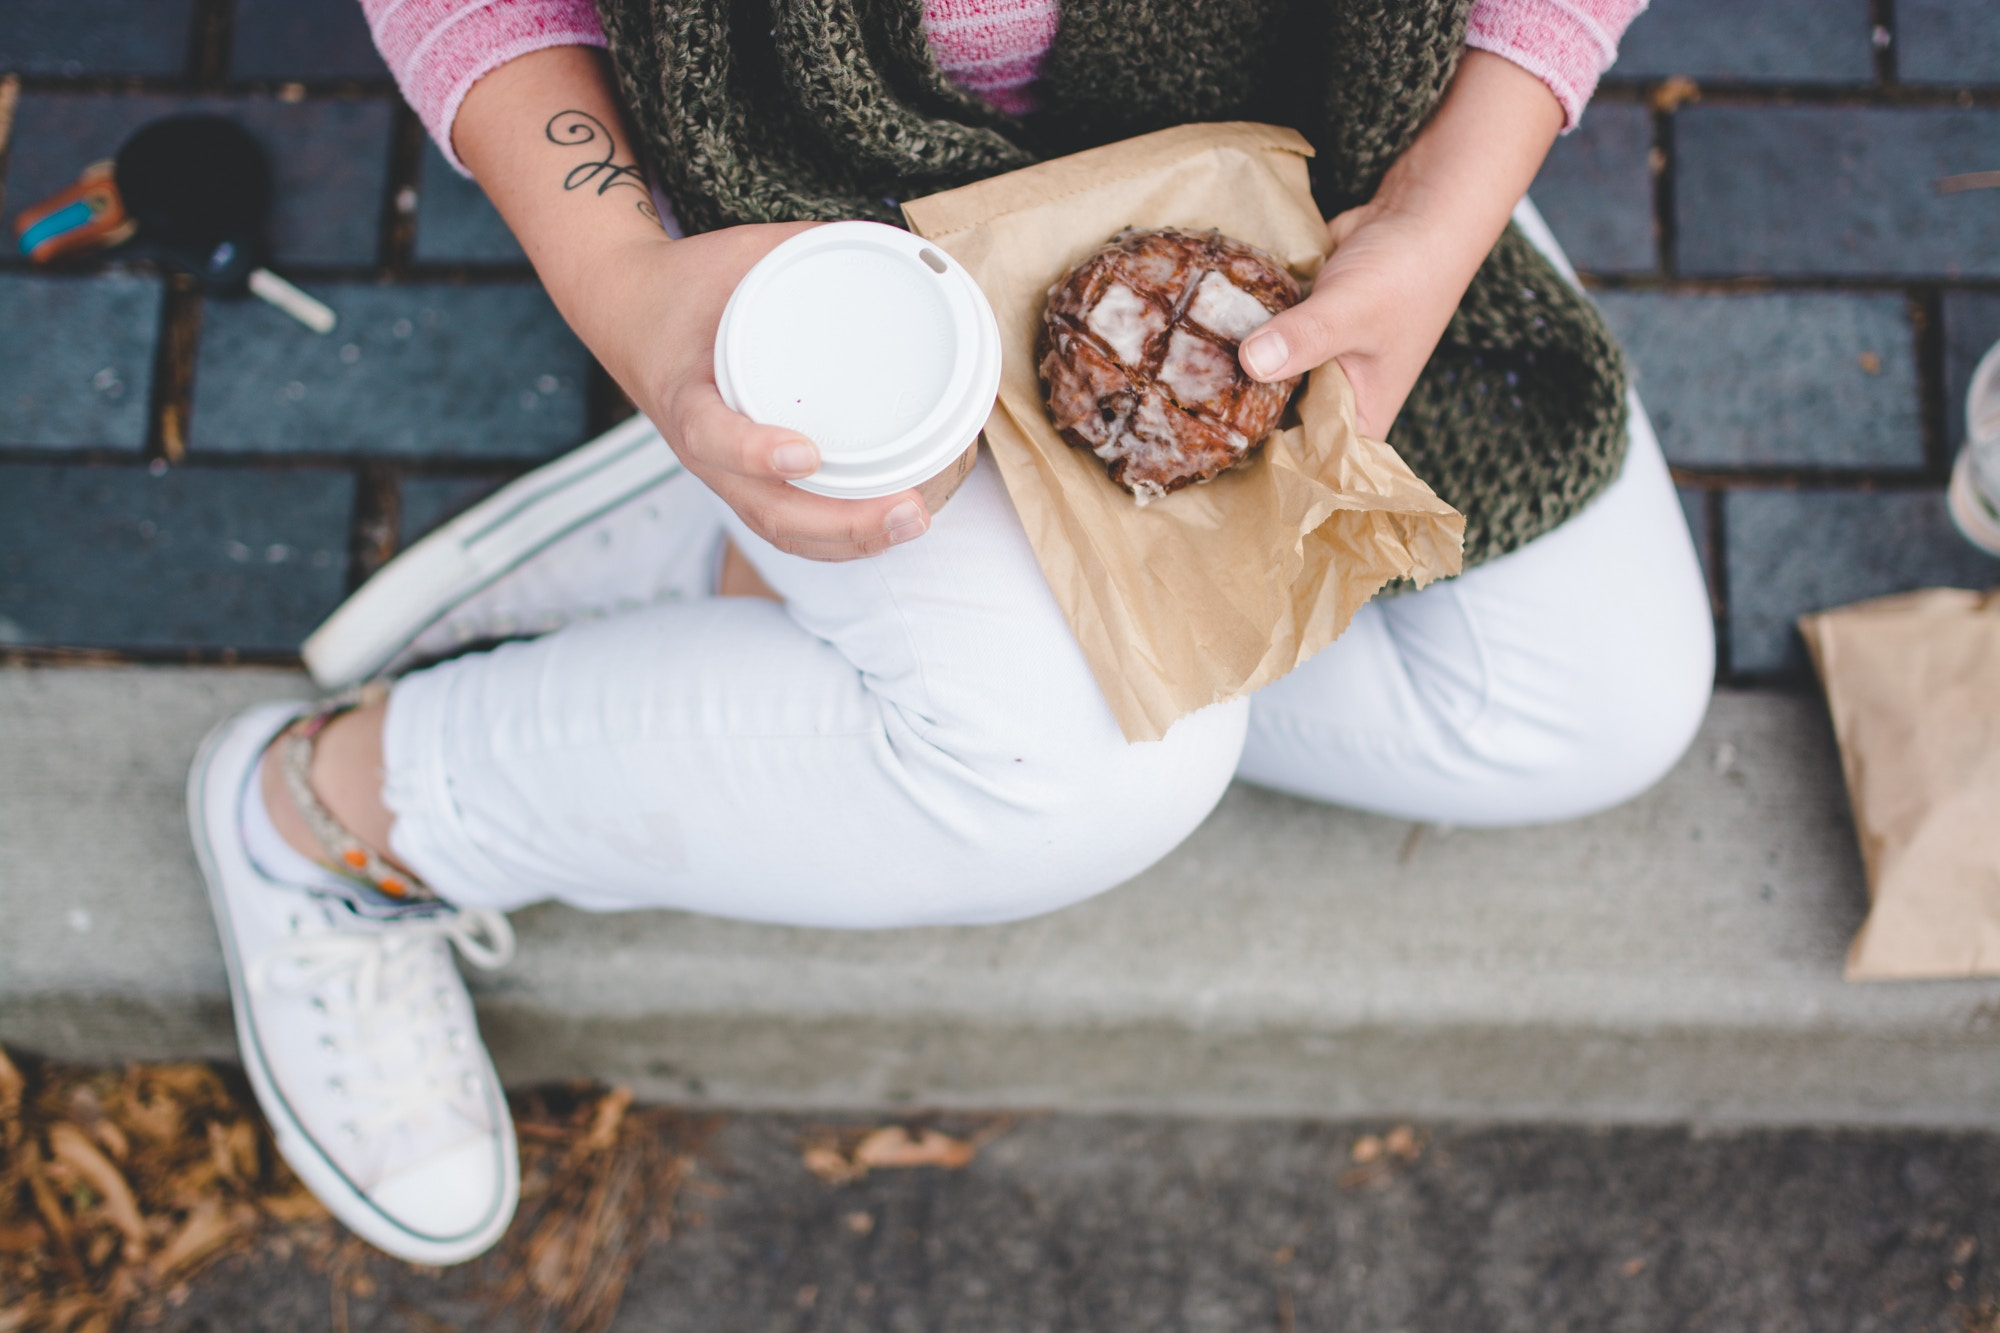 Woman holding coffee and pastry